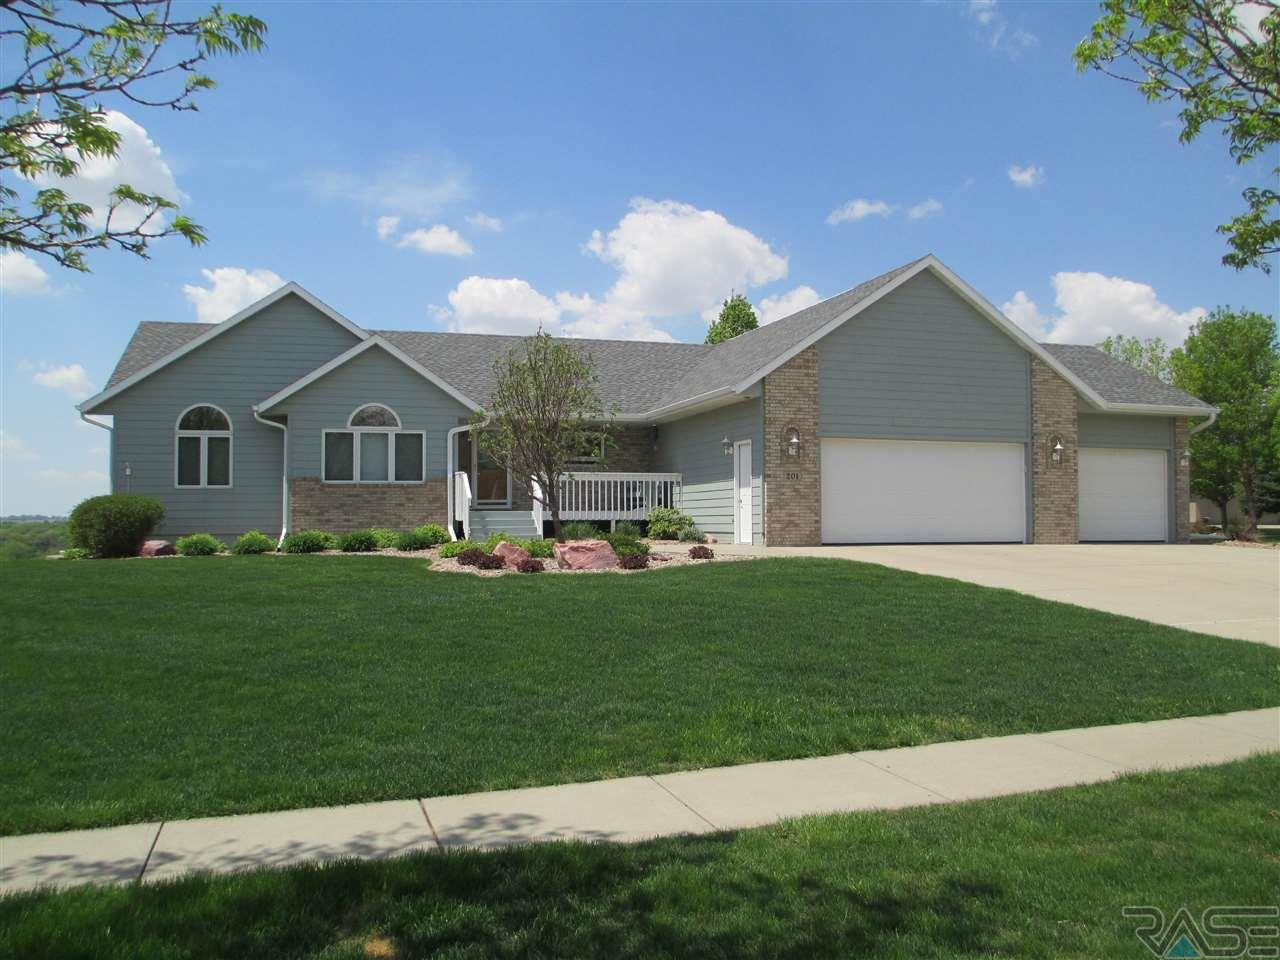 201 S Country Club Ave, Brandon, SD 57005